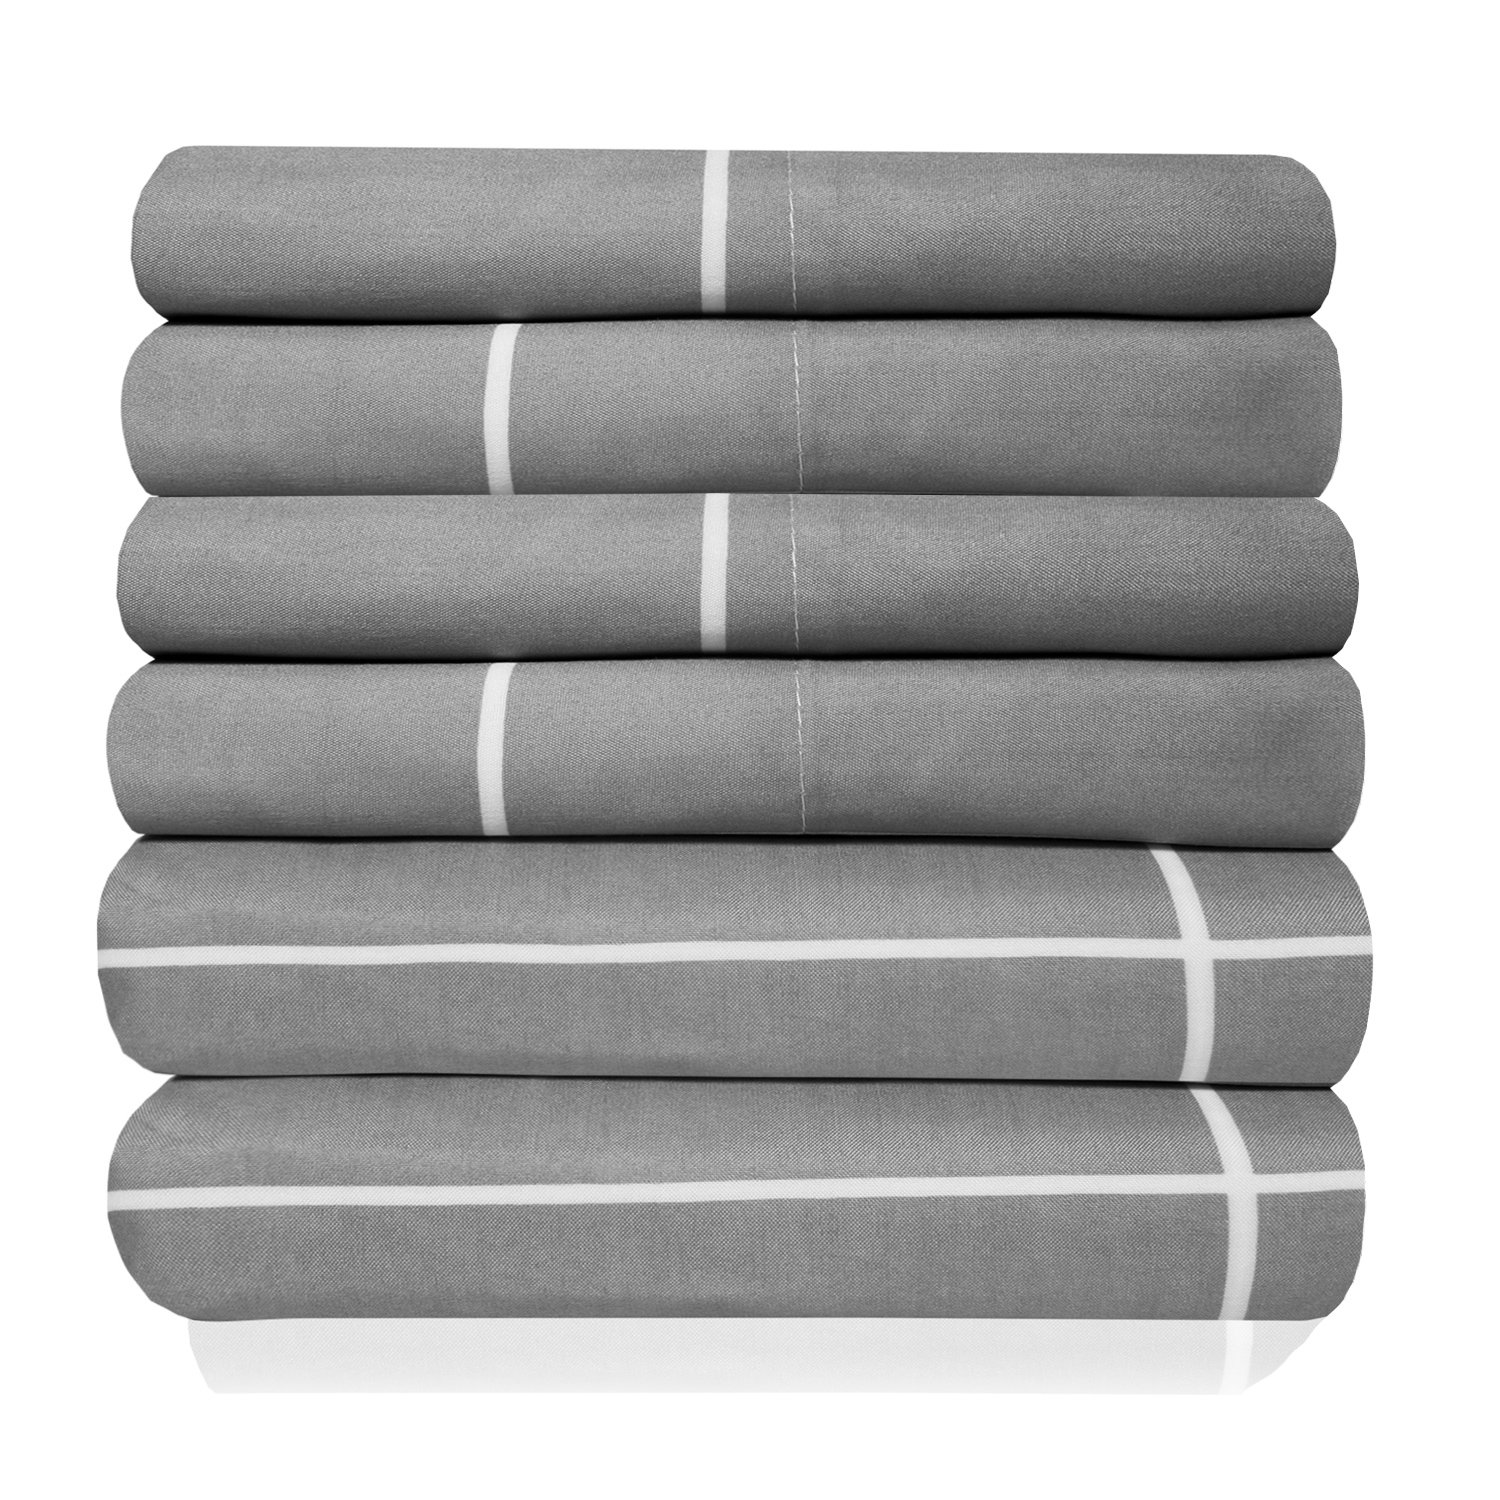 Sweet Home Collection Quality Deep Pocket Bed Sheet Set 2 Extra Pillow Cases, Great Value, Twin, Window Pane Gray, 4 Piece